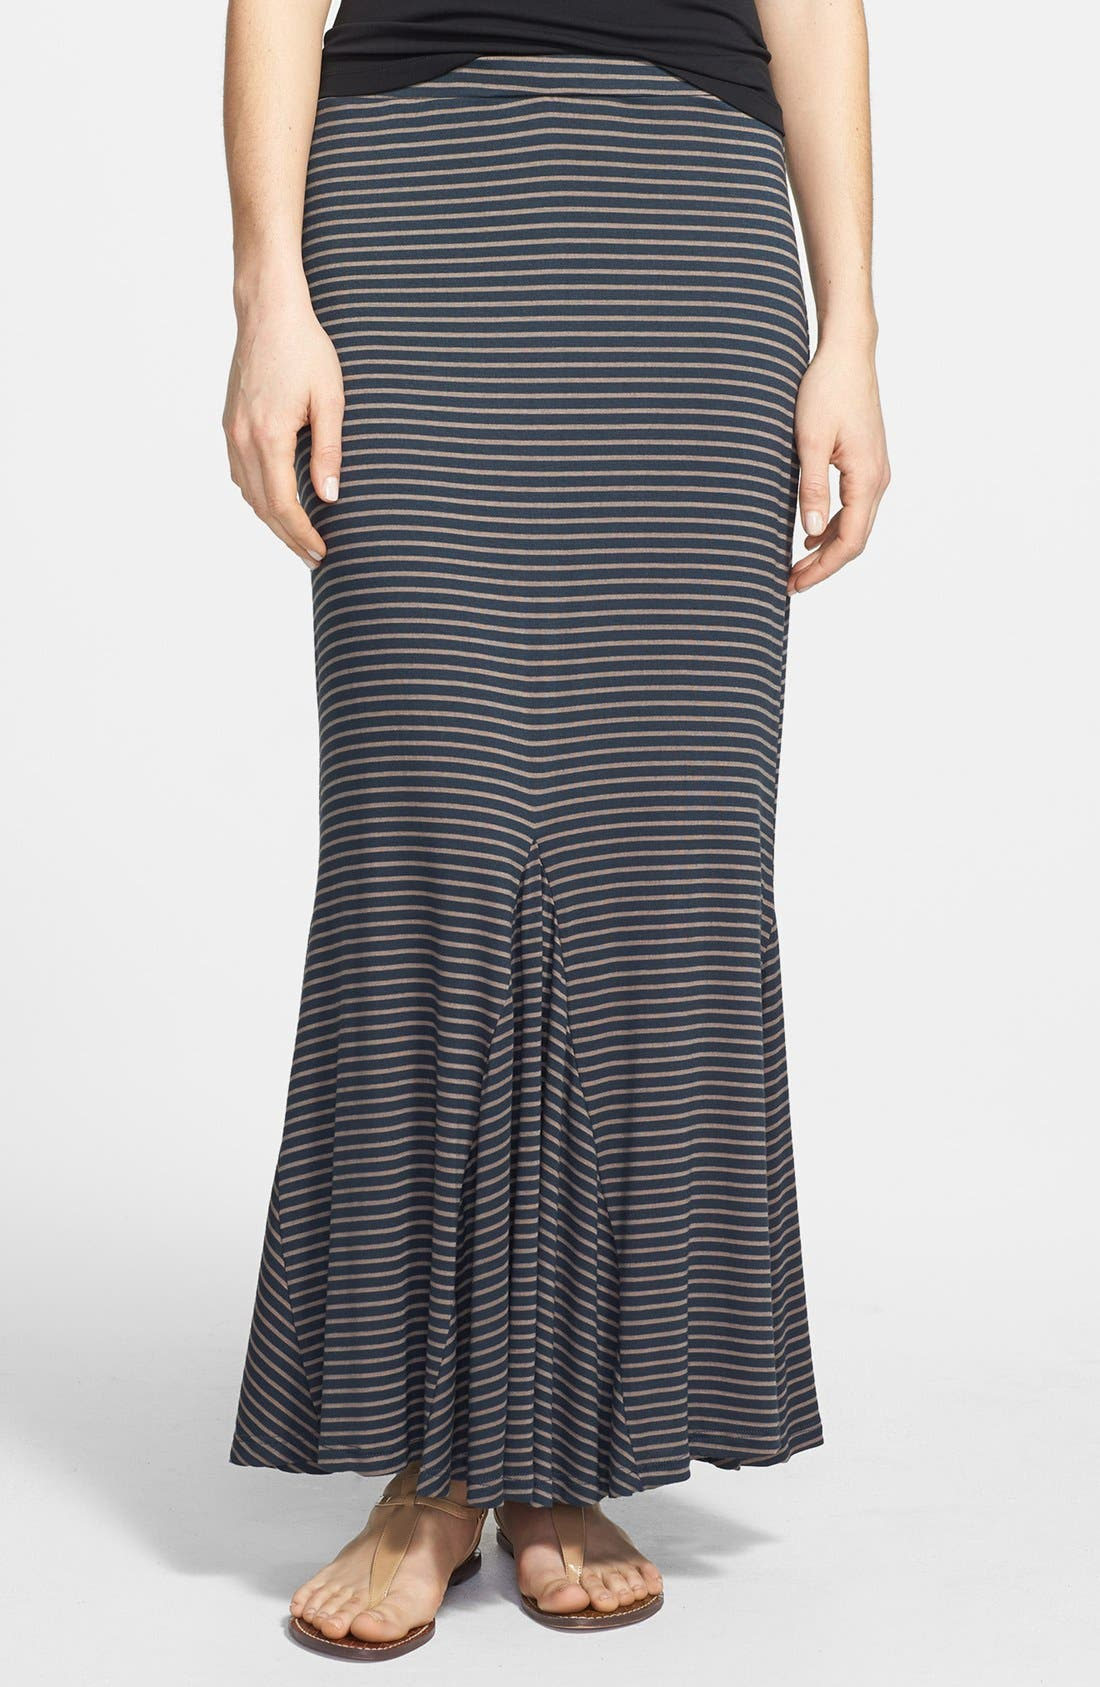 Alternate Image 1 Selected - Pleione Trumpet Hem Maxi Skirt (Regular & Petite)